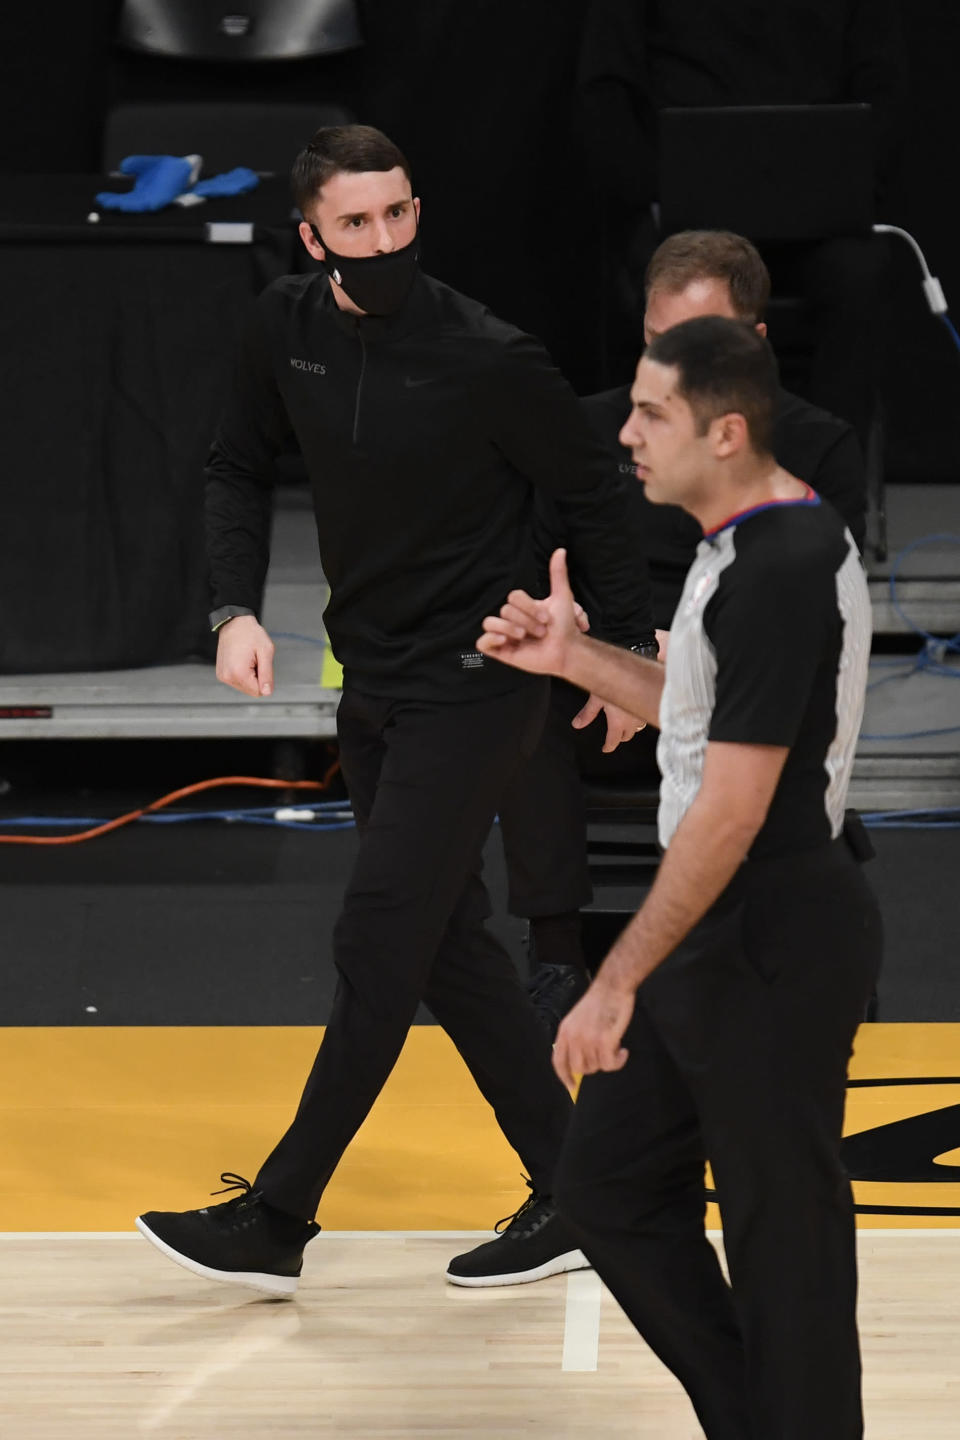 Minnesota Timberwolves head coach Ryan Saunders argues a call during the first half of an NBA basketball game against the Los Angeles Lakers in Los Angeles, Sunday, Dec. 27, 2020. (AP Photo/Kyusung Gong)